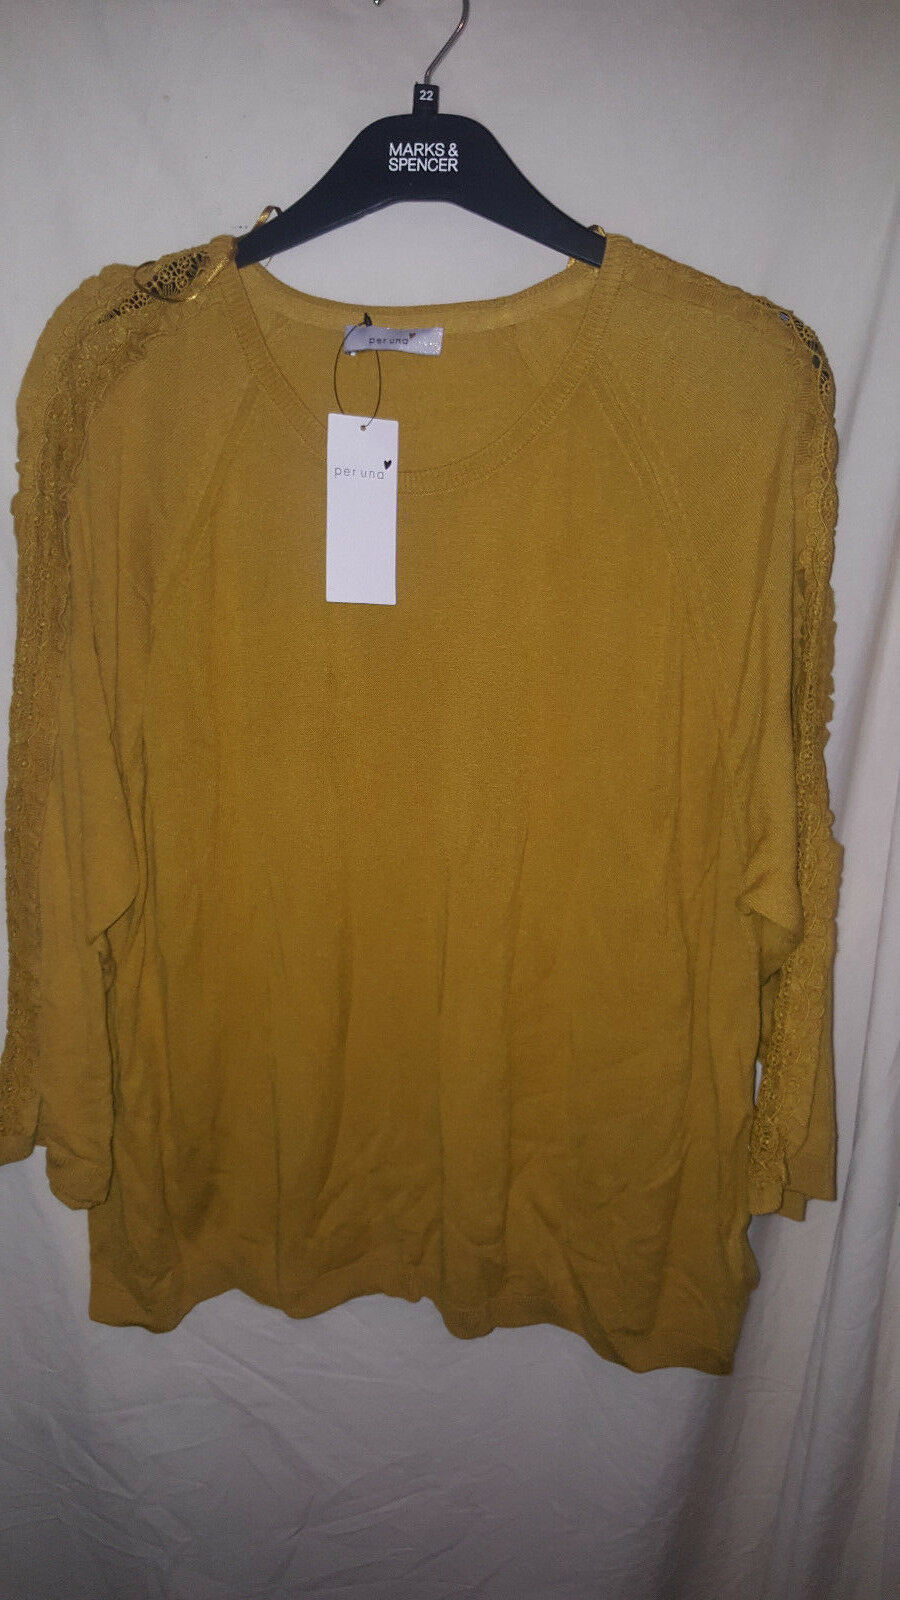 MARKS AND SPENCER gold MUSTARD COLOURED JUMPER NEW WITH TAGS SZ 24 35.00 ON TAGS